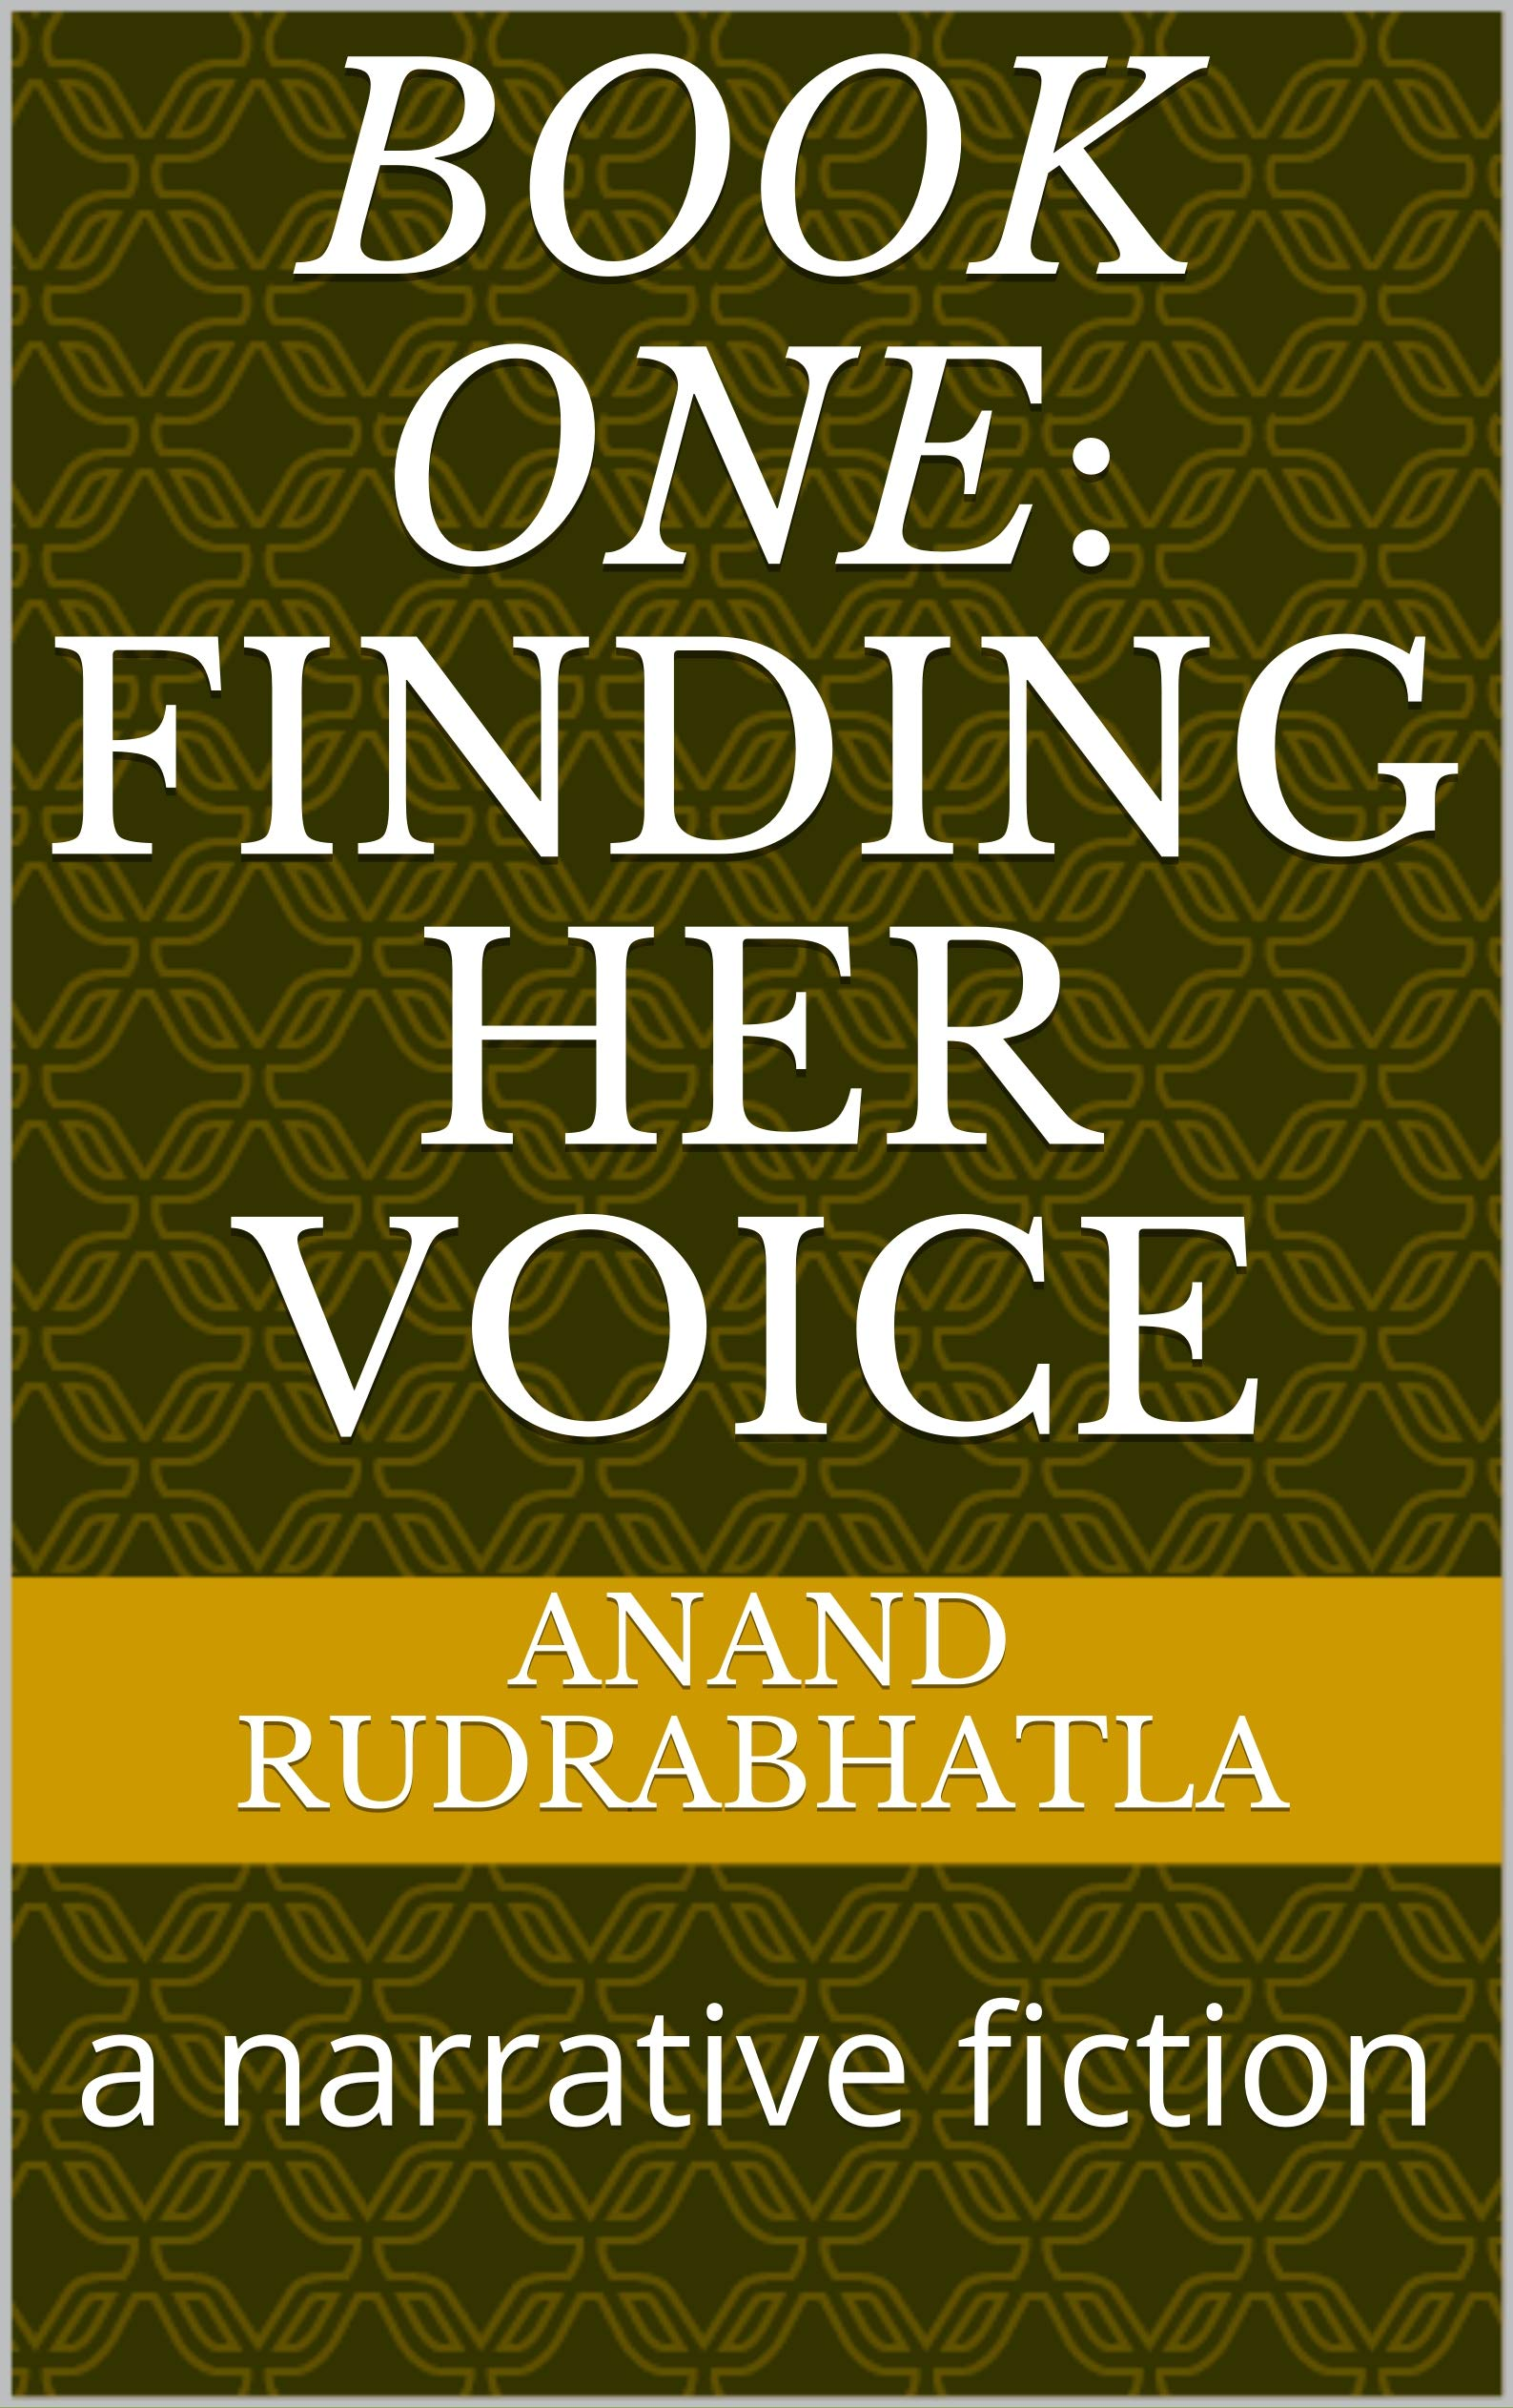 Book One: Finding her voice: a narrative fiction